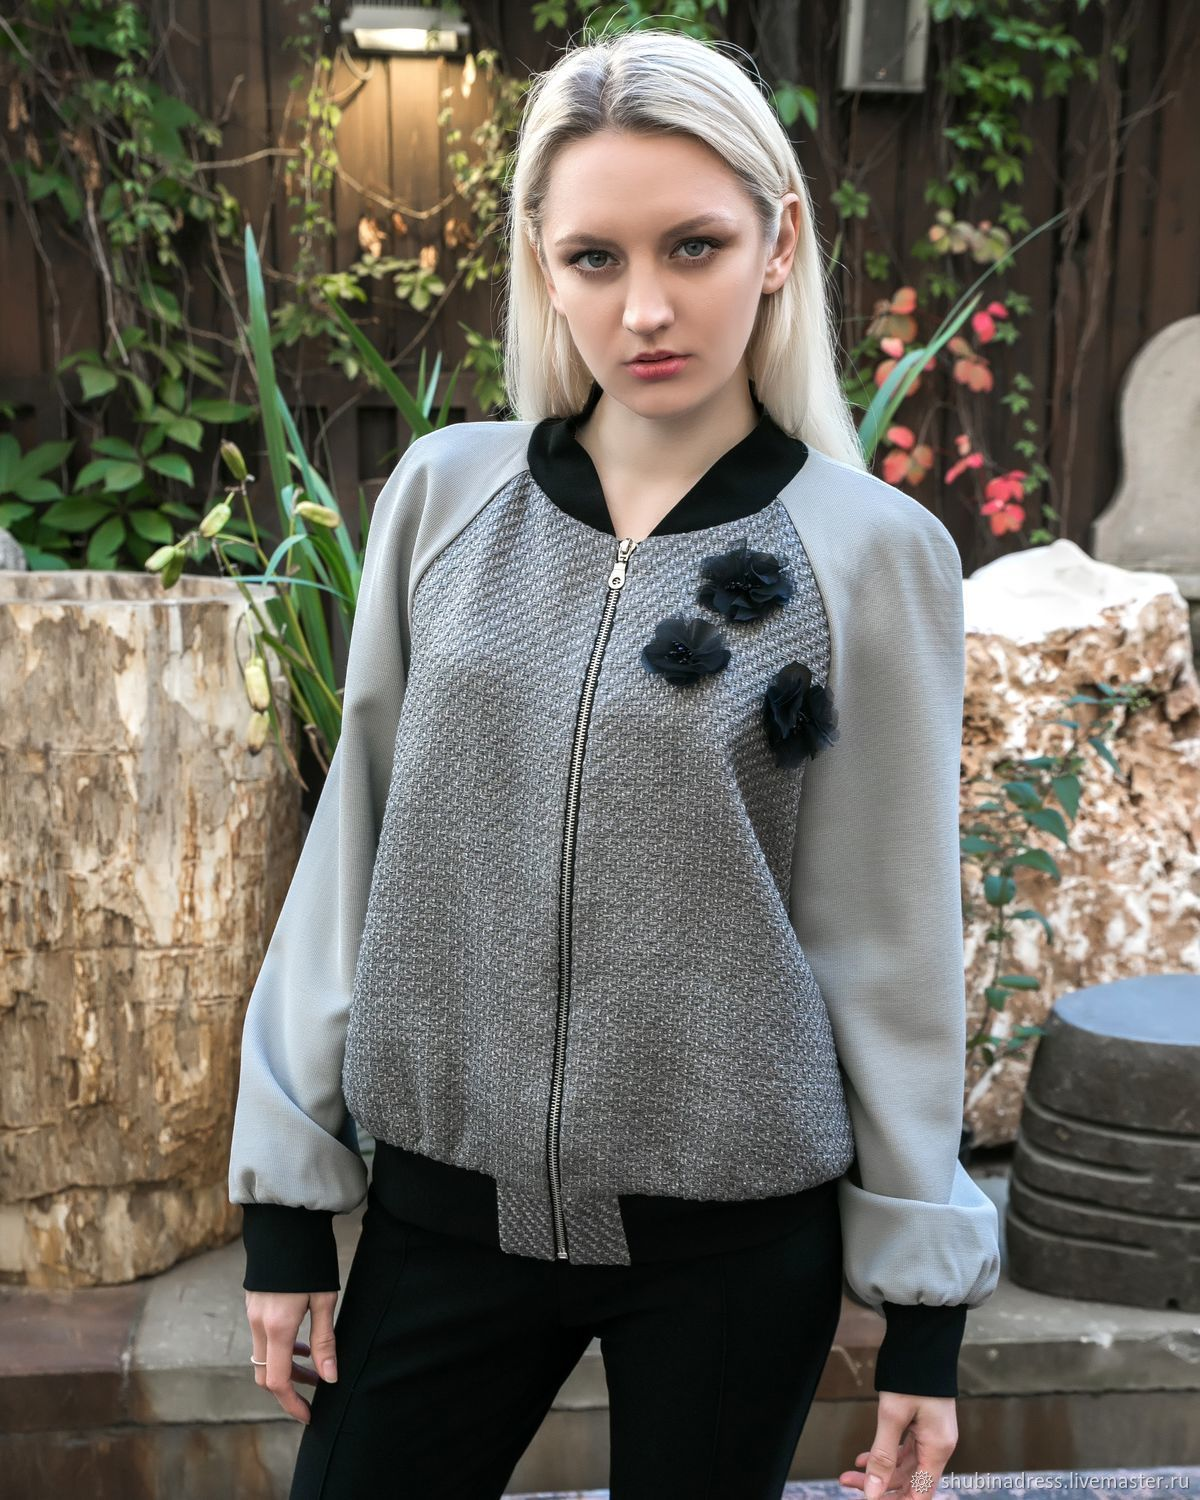 Wool bomber jacket with flowers brooch (detachable). Included are 3 brooches. In the presence of a bomber jacket with set-in sleeve and the Raglan sleeve as pictured. When ordering please clarify the